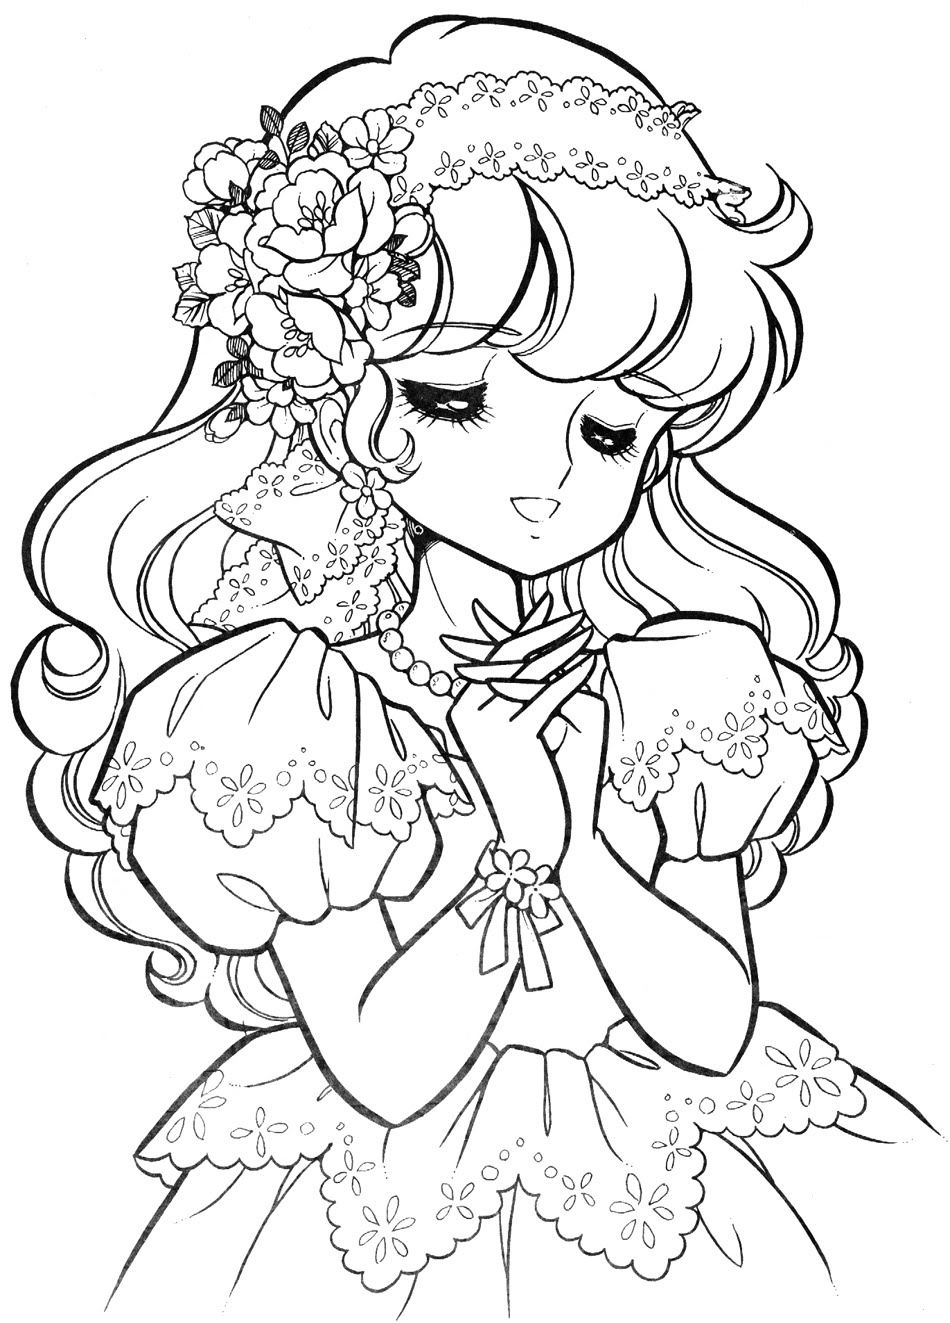 Tinkledreamyjoanna13 Jpg Photo By Khateerah Photobucket Princess Coloring Princess Coloring Pages Cute Coloring Pages